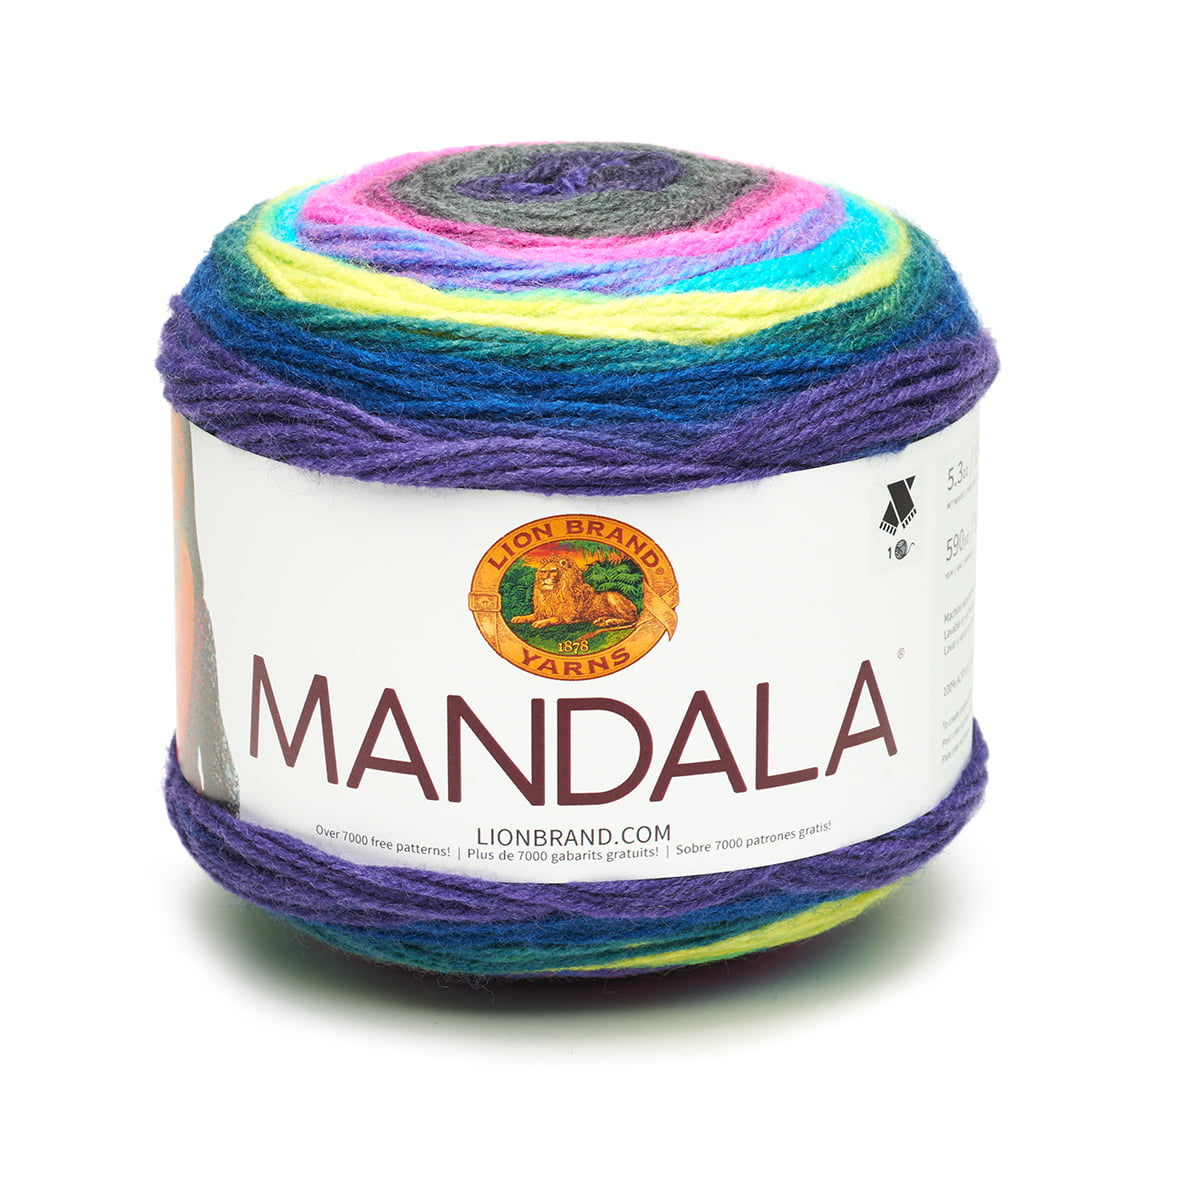 Lion Brand Yarn Mandala Fashion Yarn 590 Yd Walmart Inventory